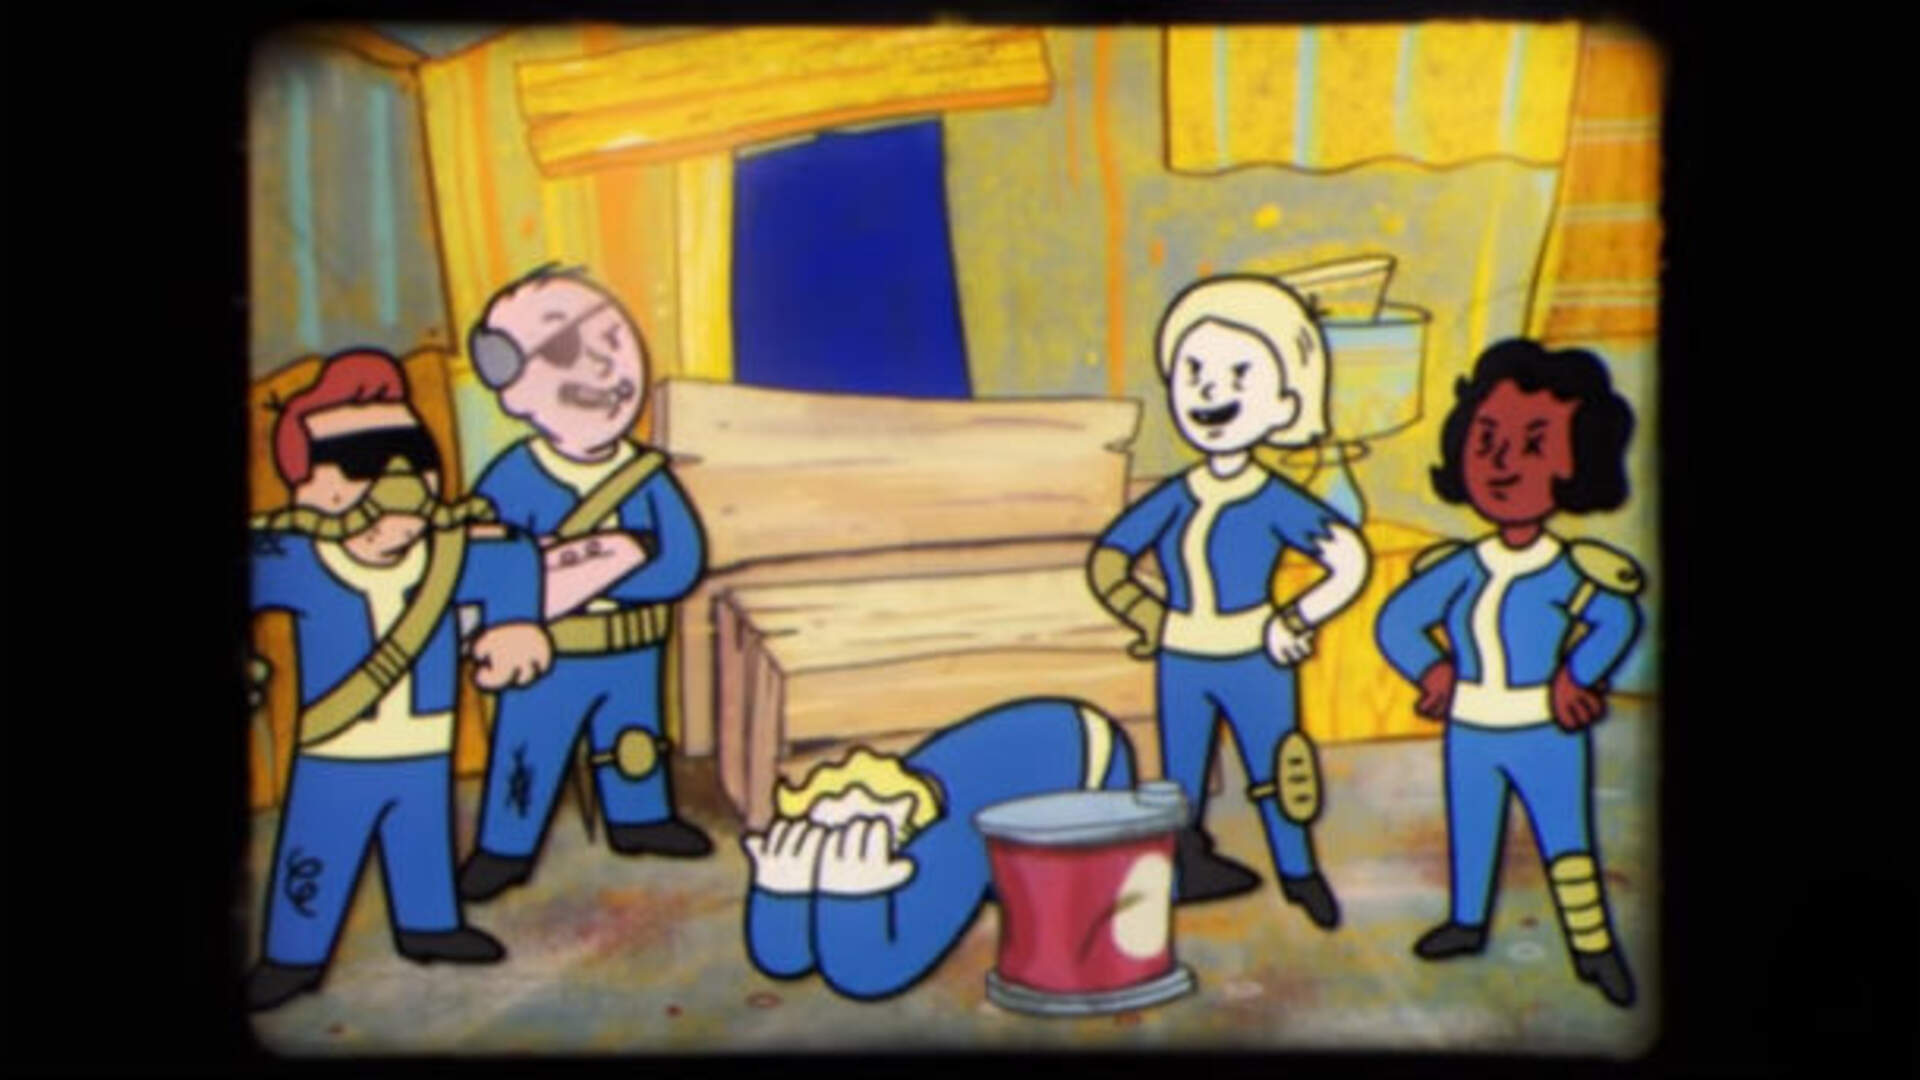 Here's How I Handled Griefing in Fallout 76